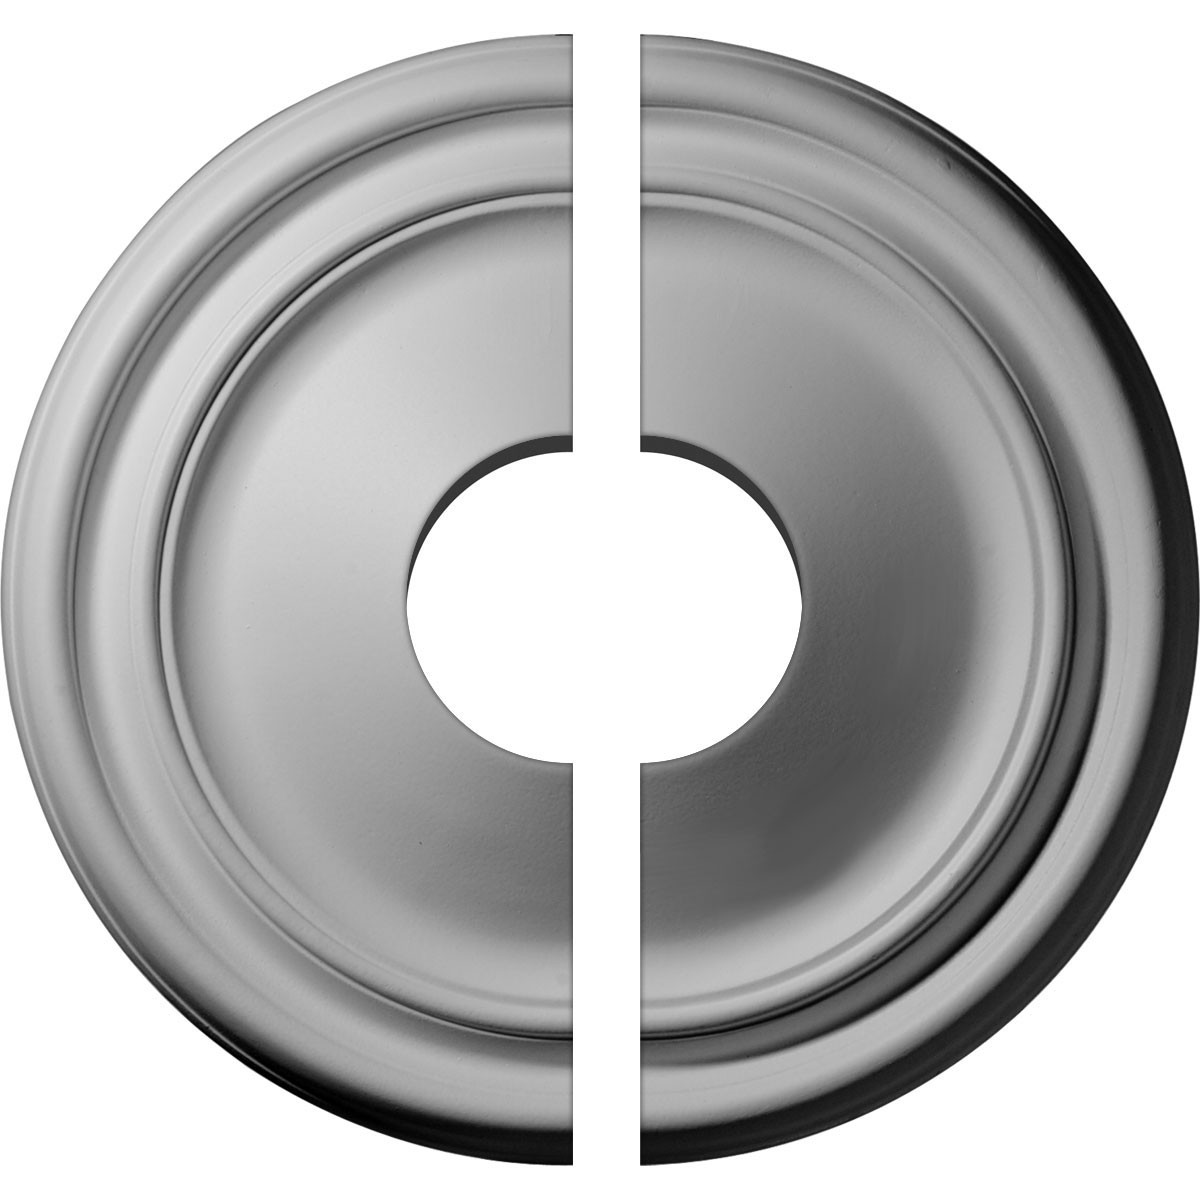 """EM-CM12RE2-03500 - 12""""OD x 3 1/2""""ID x 1 3/4""""P Reece Ceiling Medallion, Two Piece (Fits Canopies up to 3 1/2"""")"""